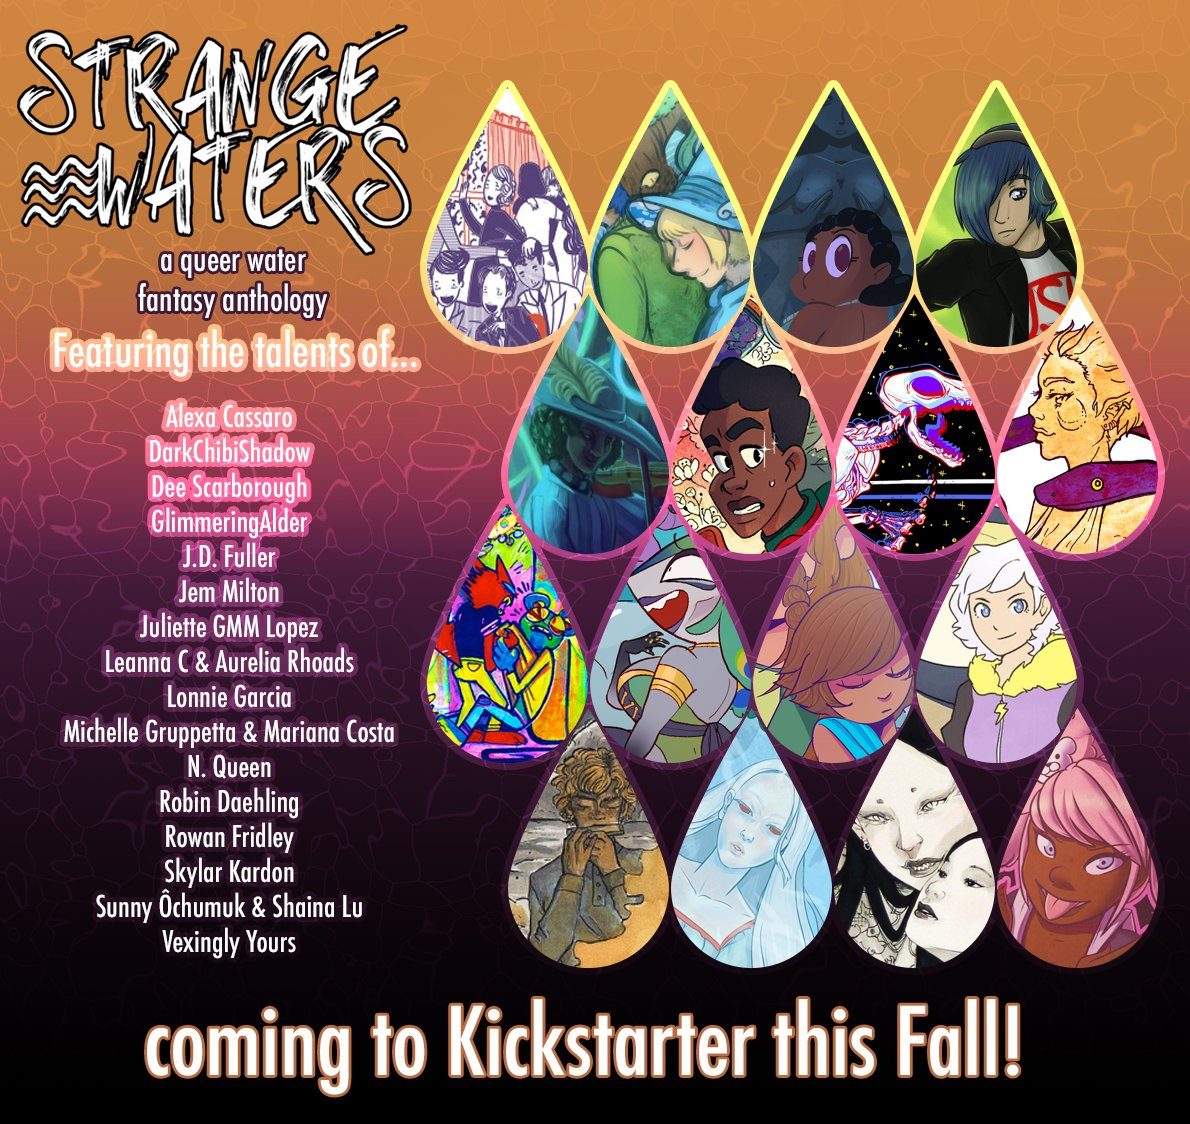 "We're proud to announce the artist list for Strange Waters! We're so excited to share the talents of these amazing creators, featuring fantasy stories with the central theme of ""water"". Check out our Tumblr post for links: hauntedcosmospress.tumblr.com/post/173859827…"